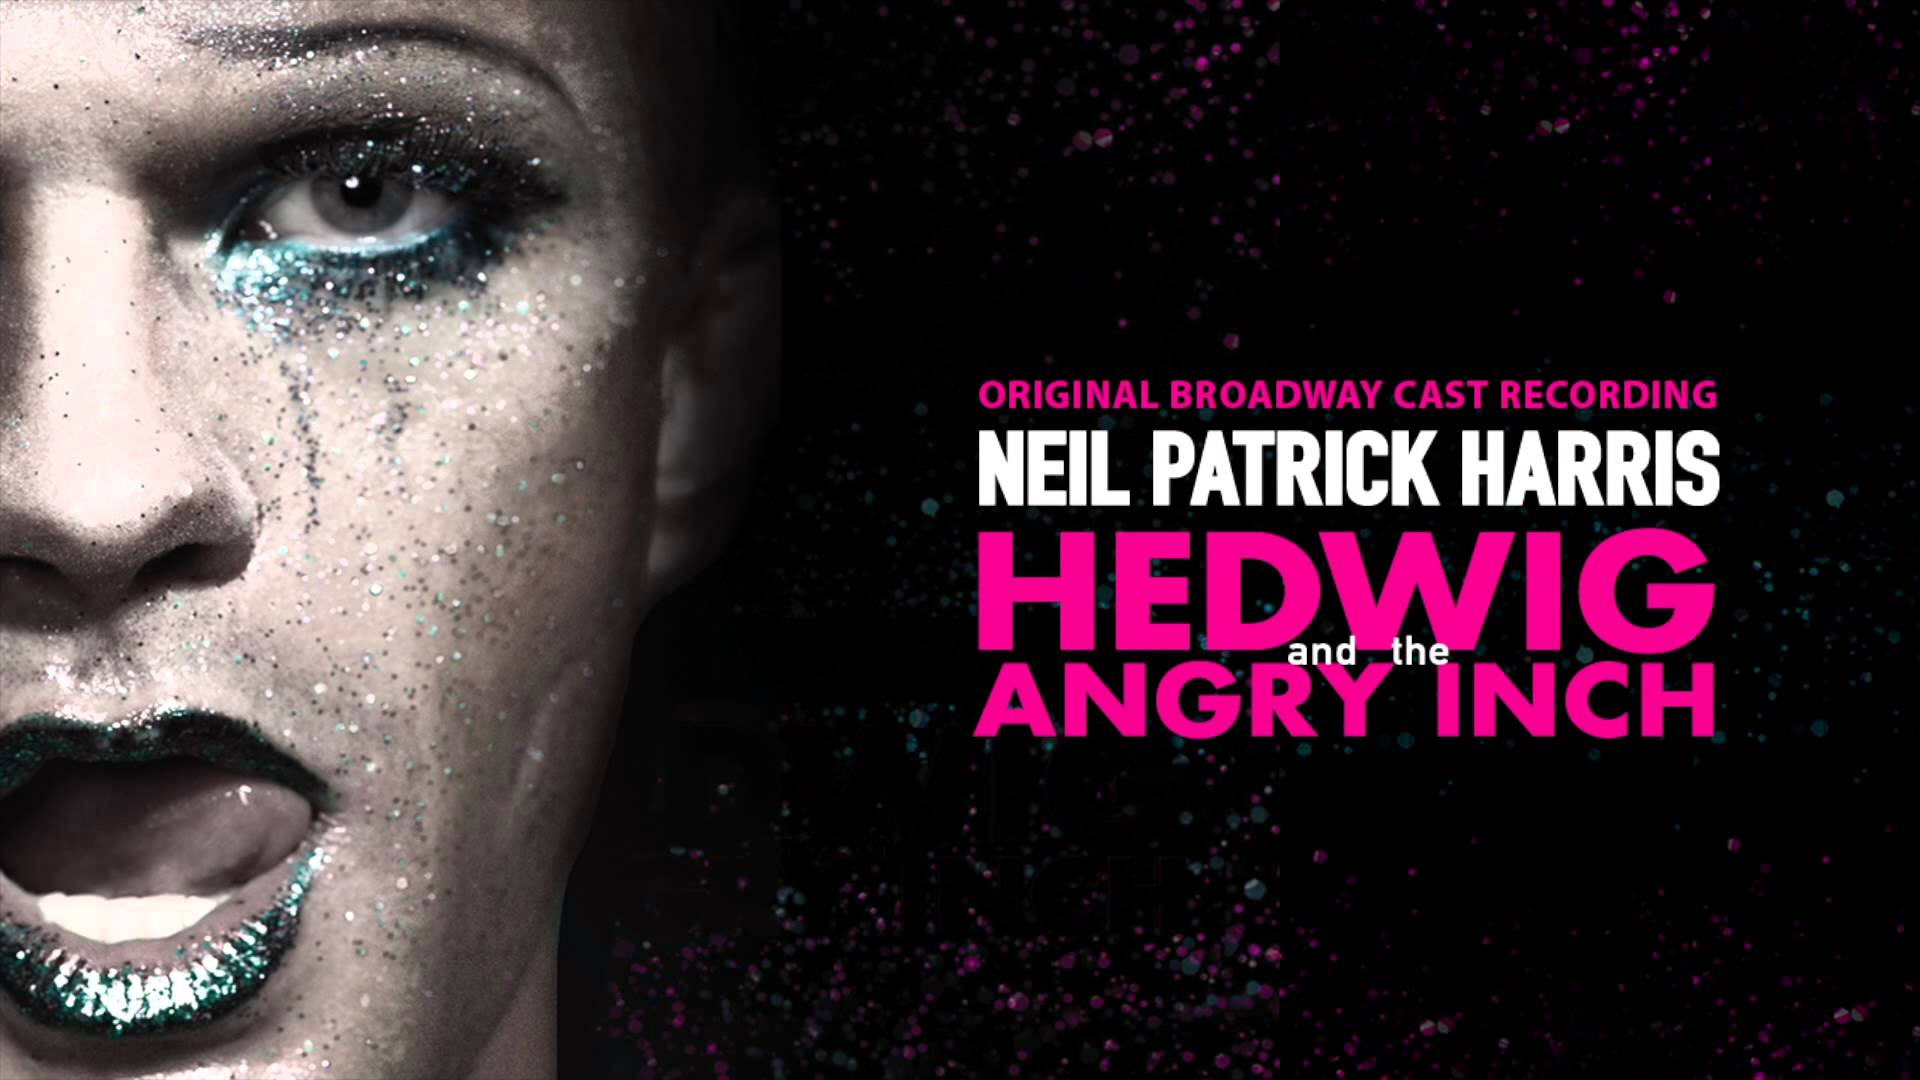 HEDWIG AND THE ANGRY INCH    BELASCO THEATRE, BROADWAY   March 29th, 2014 through September 13th, 2015  BOOK: JOHN CAMERON MITCHELL  MUSIC & LYRICS: STEPHEN TRASK  DIRECTOR: Michael Mayer  STARRING: NEIL PATRICK HARRIS  Winner : DRAMA DESK AWARD, DRAMA LEAGUE, OUTER CRITICS CIRCLE, TONY AWARD   Hedwig Online